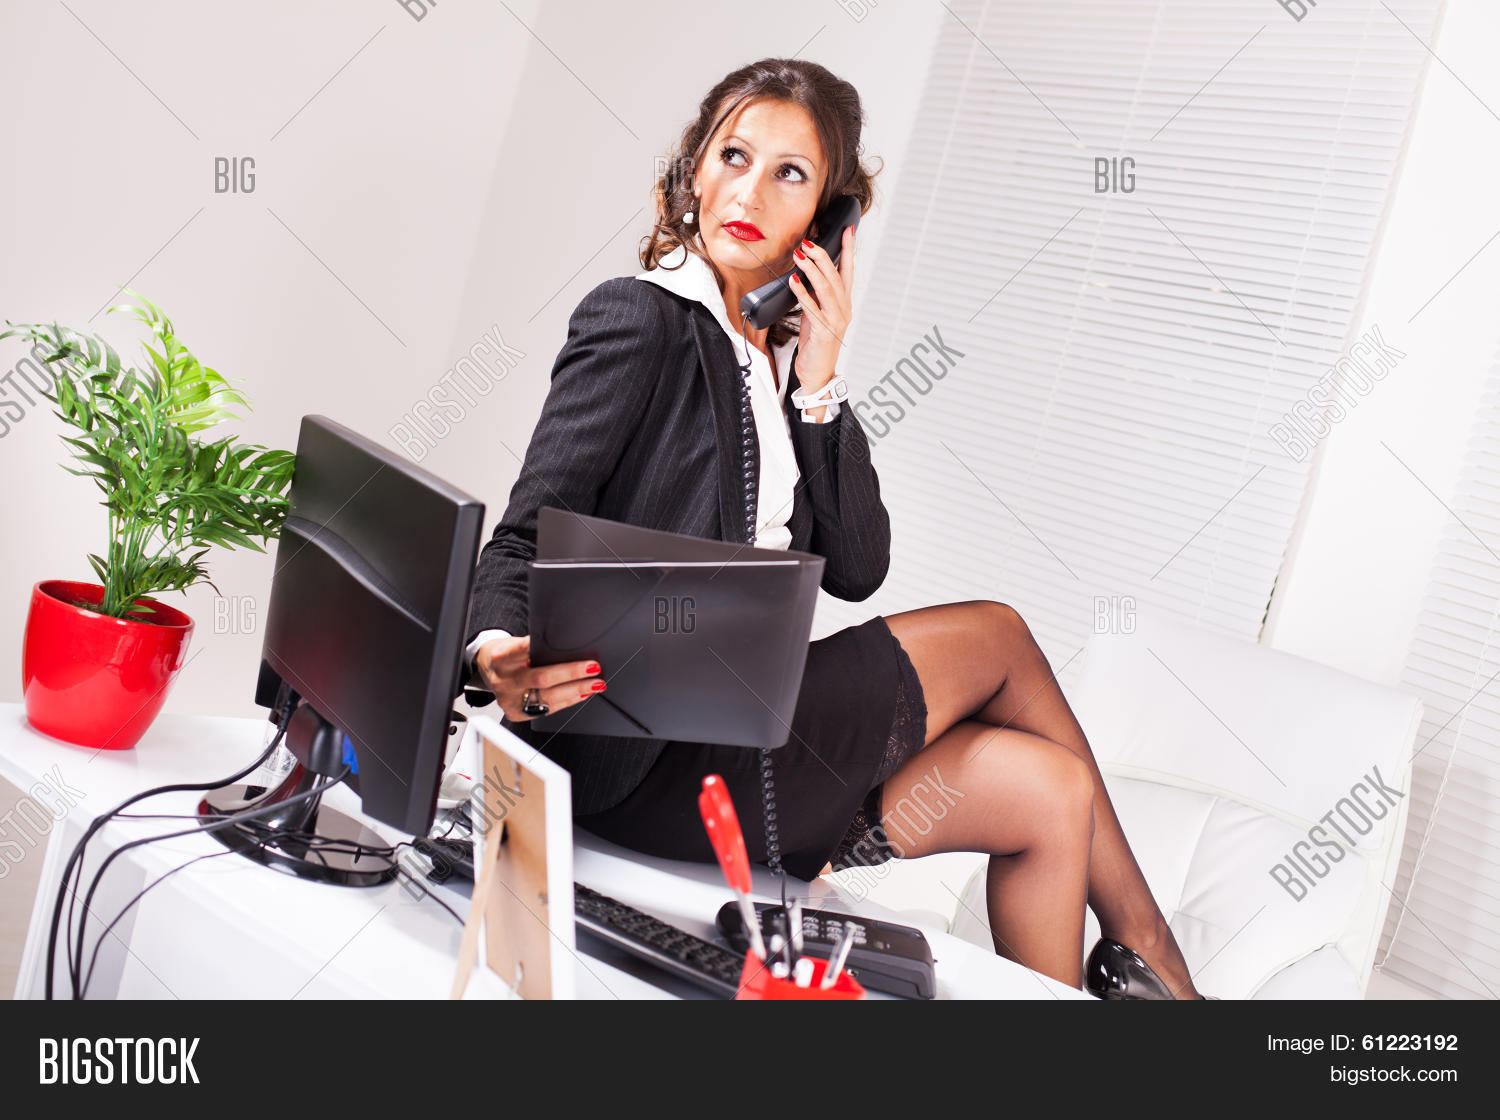 Sexy Secretary Image Amp Photo Bigstock